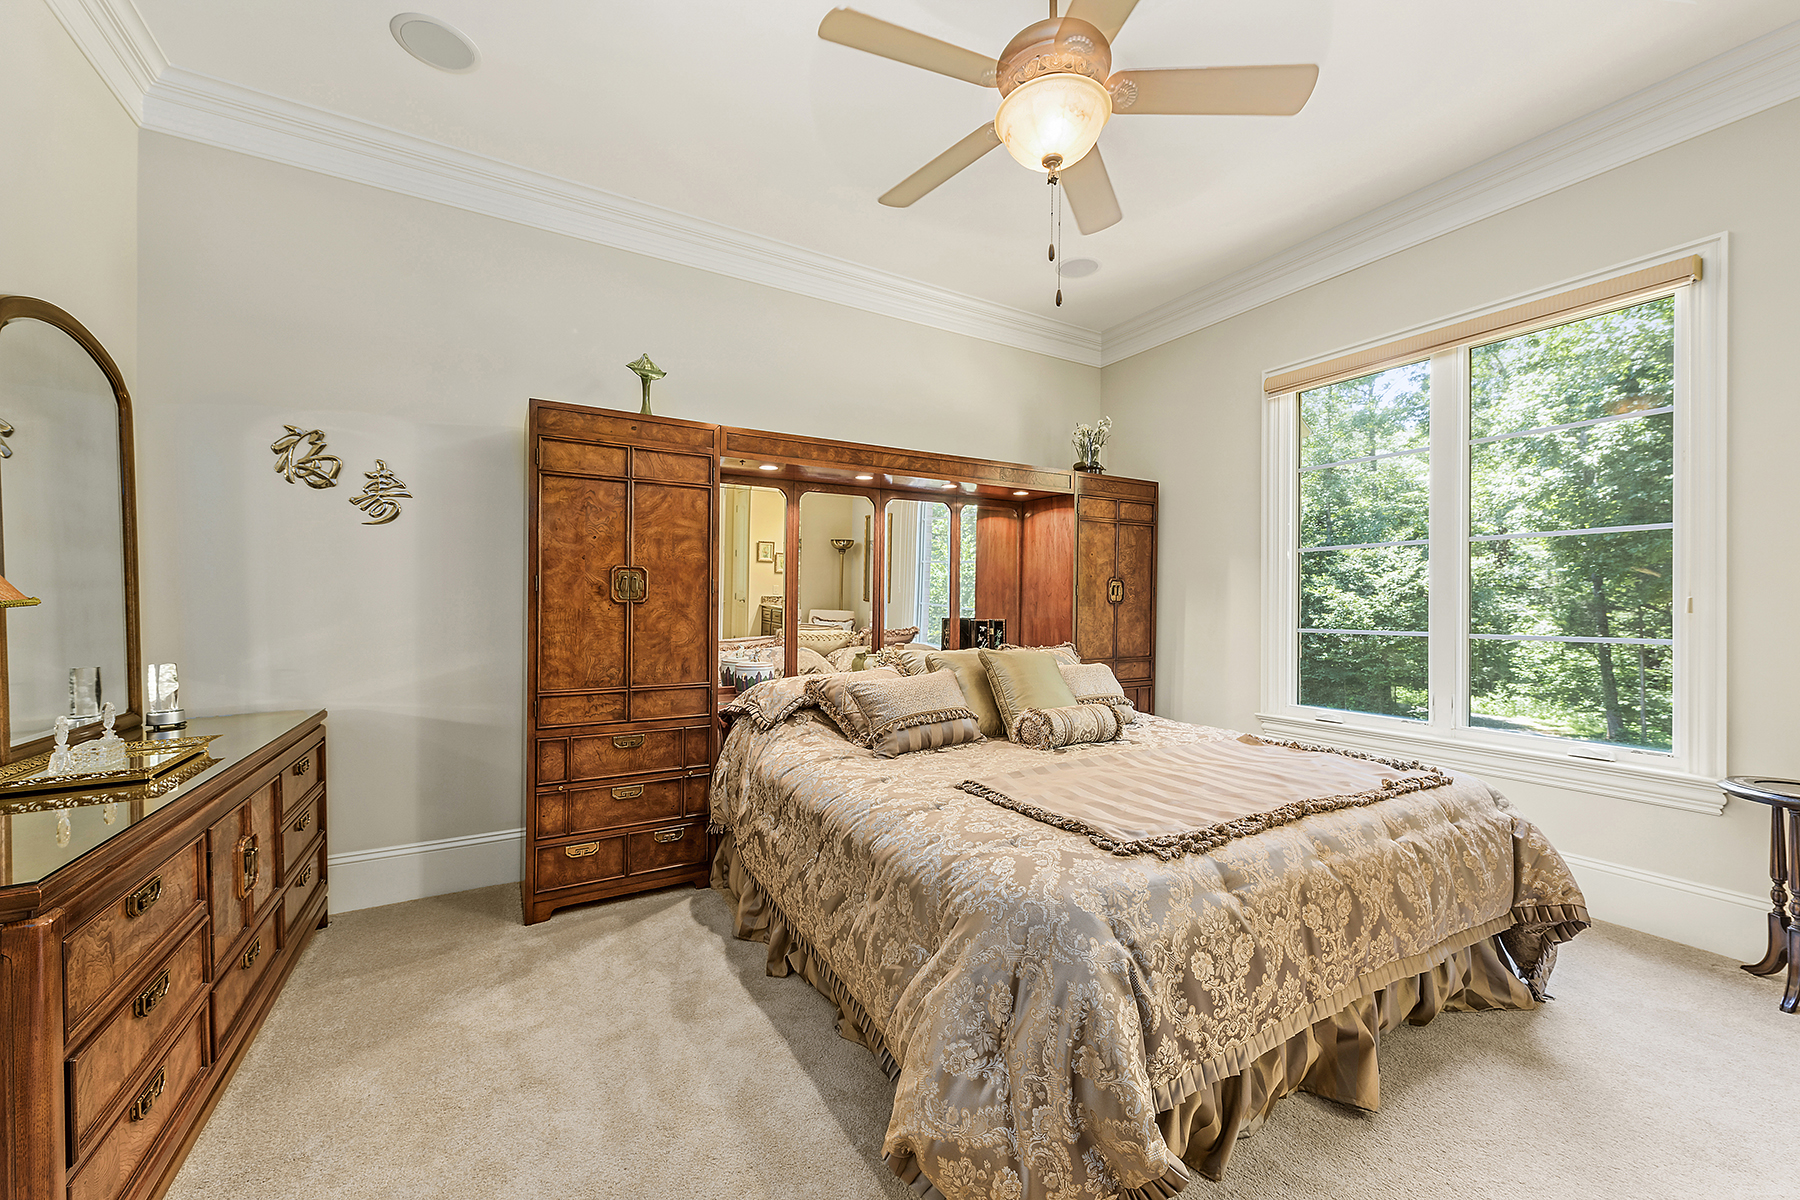 Additional photo for property listing at 17415 Cabarrus Rd , Midland, NC 28107 17415  Cabarrus Rd,  Midland, North Carolina 28107 United States